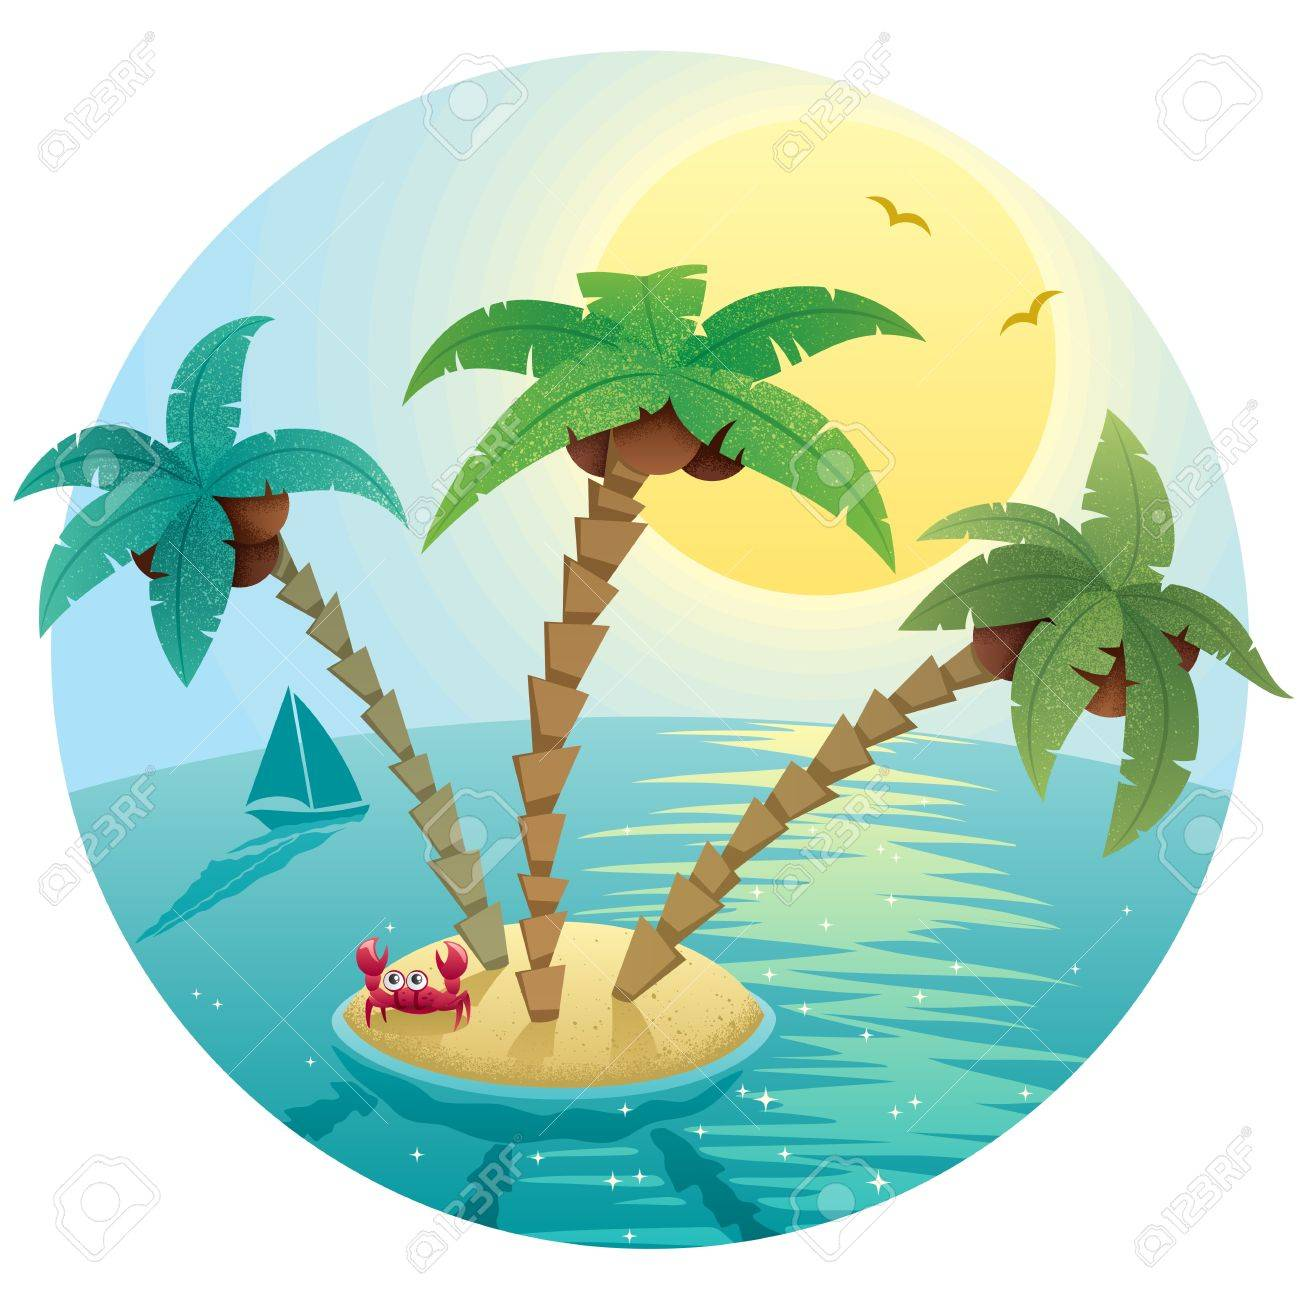 landscape with small tropical island royalty free cliparts vectors rh 123rf com cartoon tropical island clipart